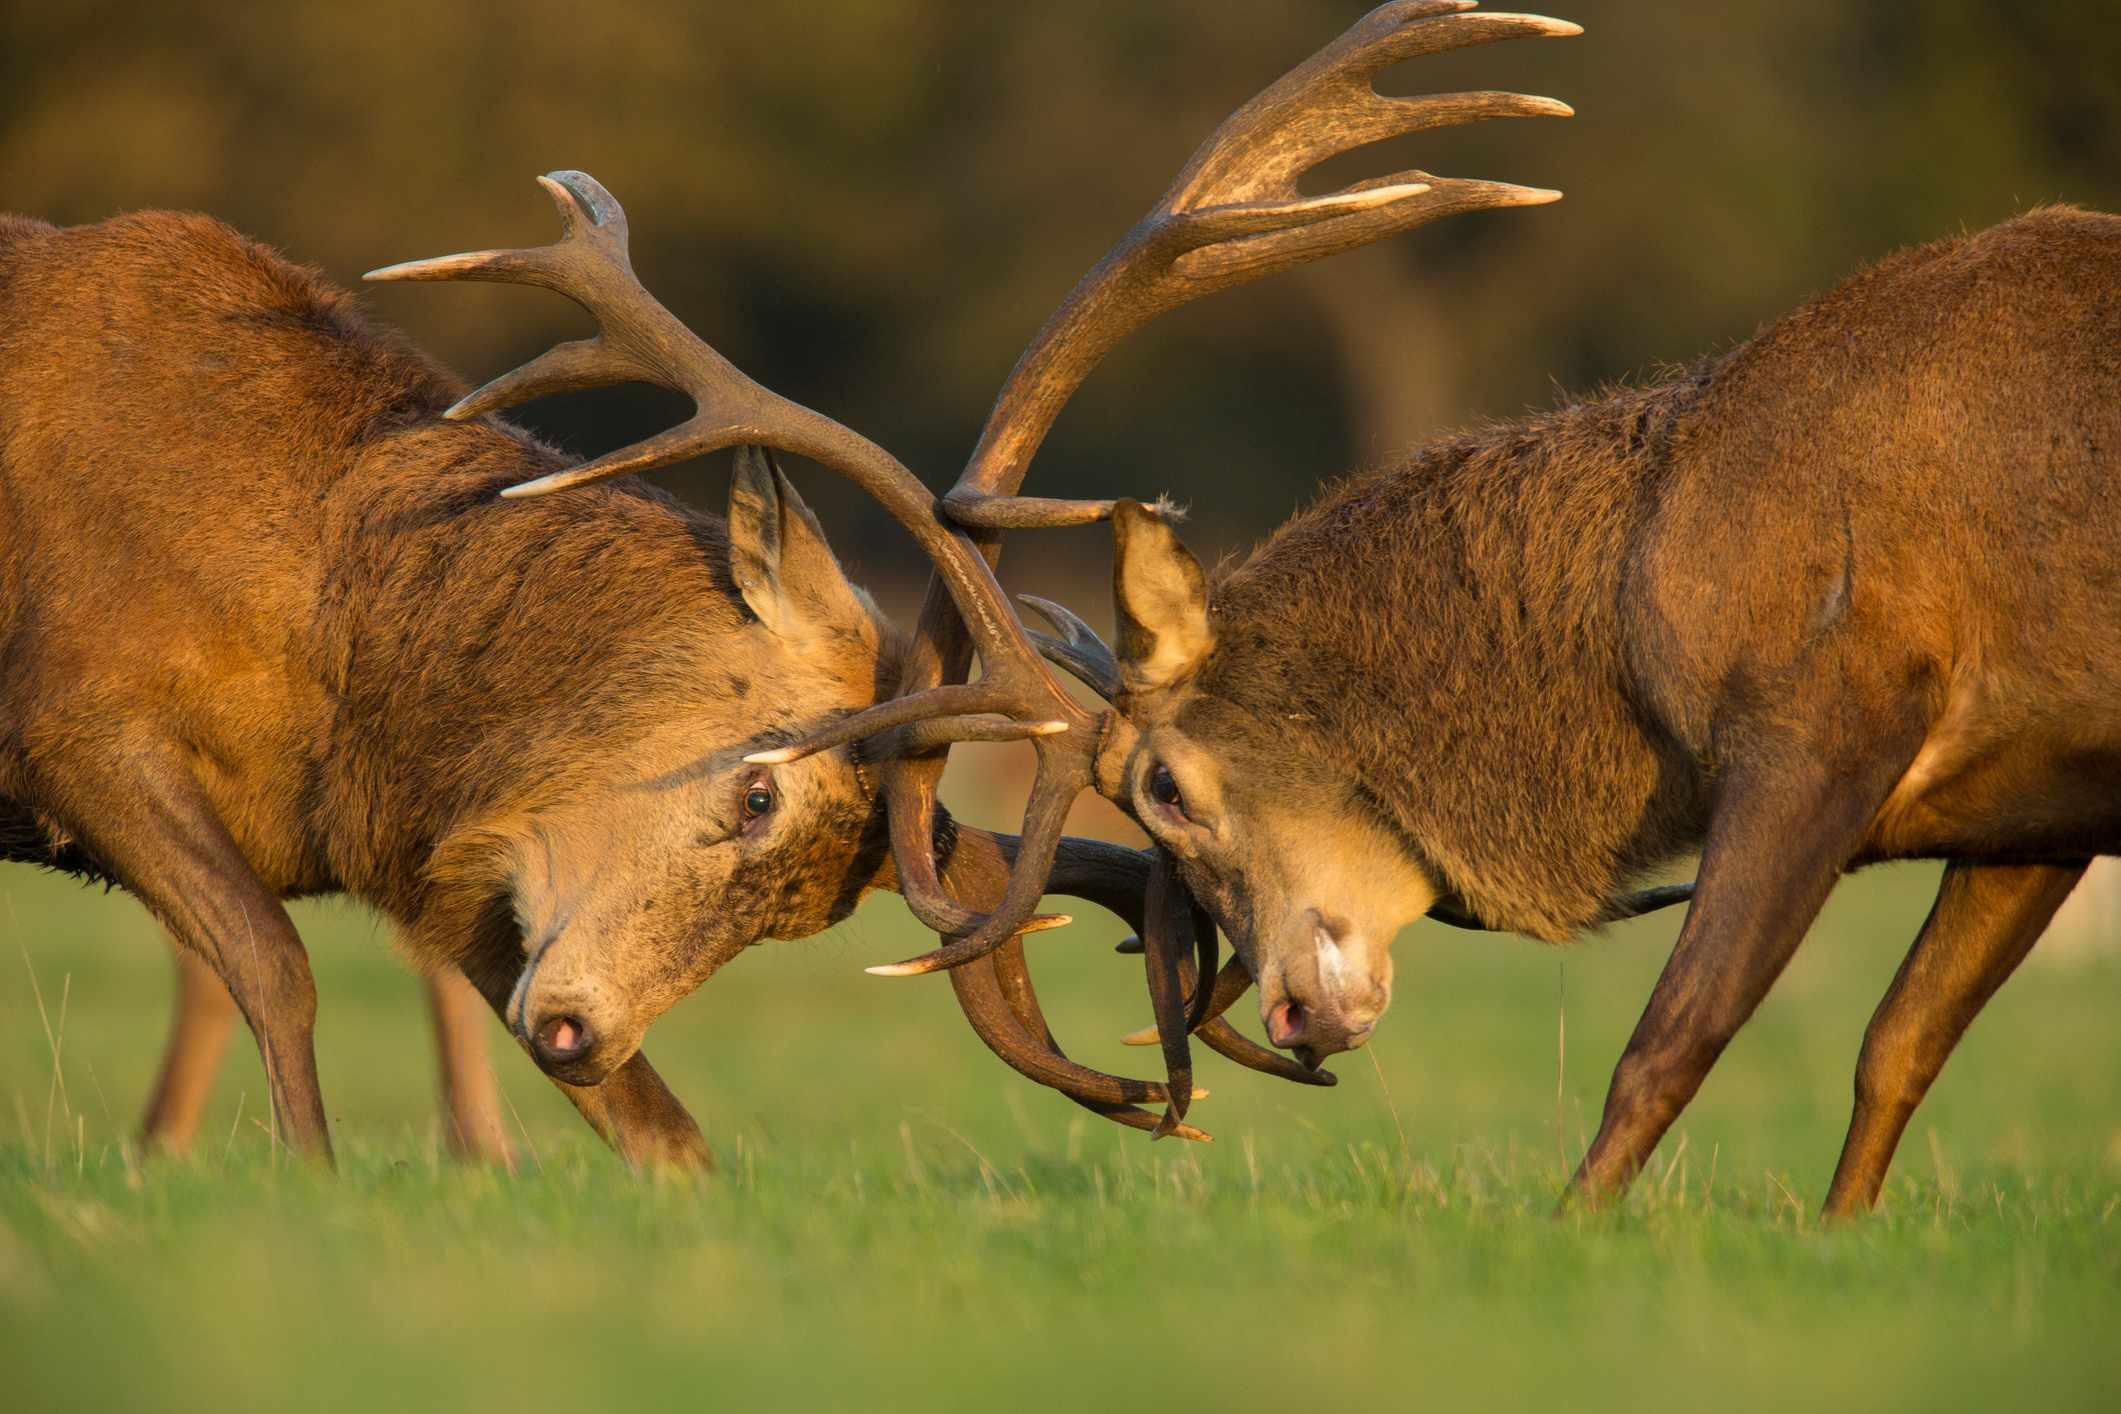 Red deer stags fighting during the rutting season. Taken in the late afternoon light.